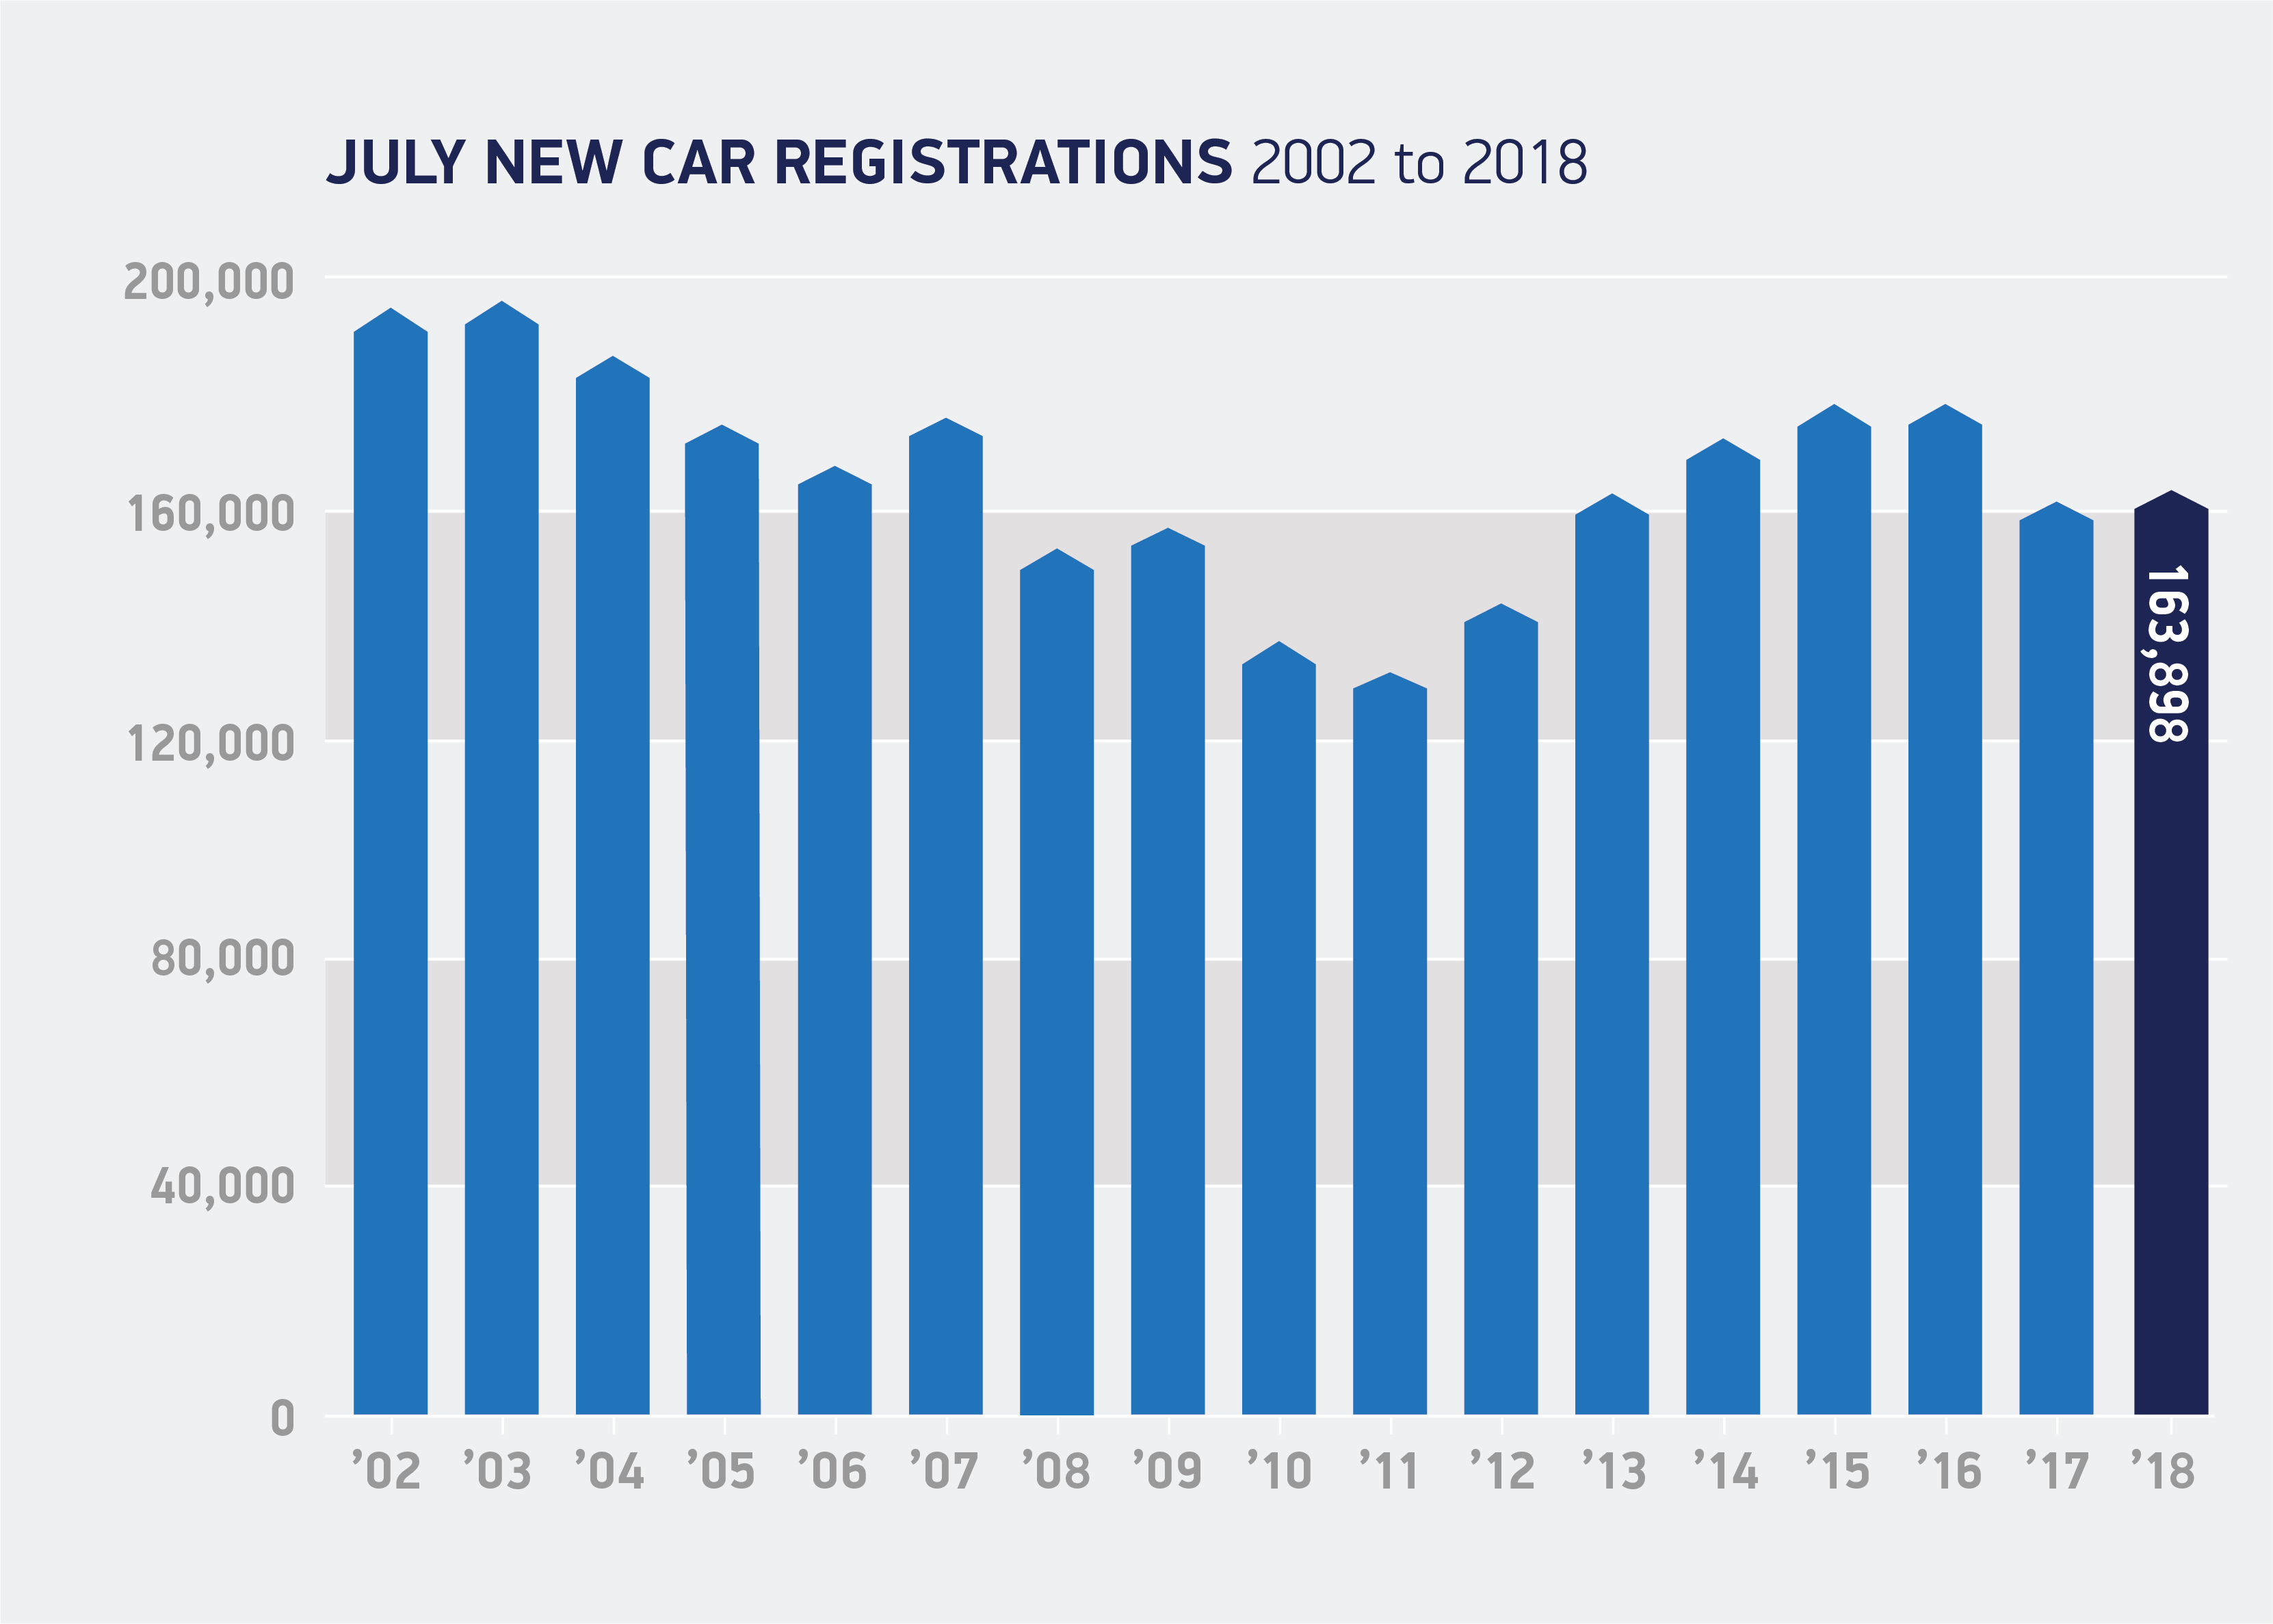 July registrations 2002 to 2018